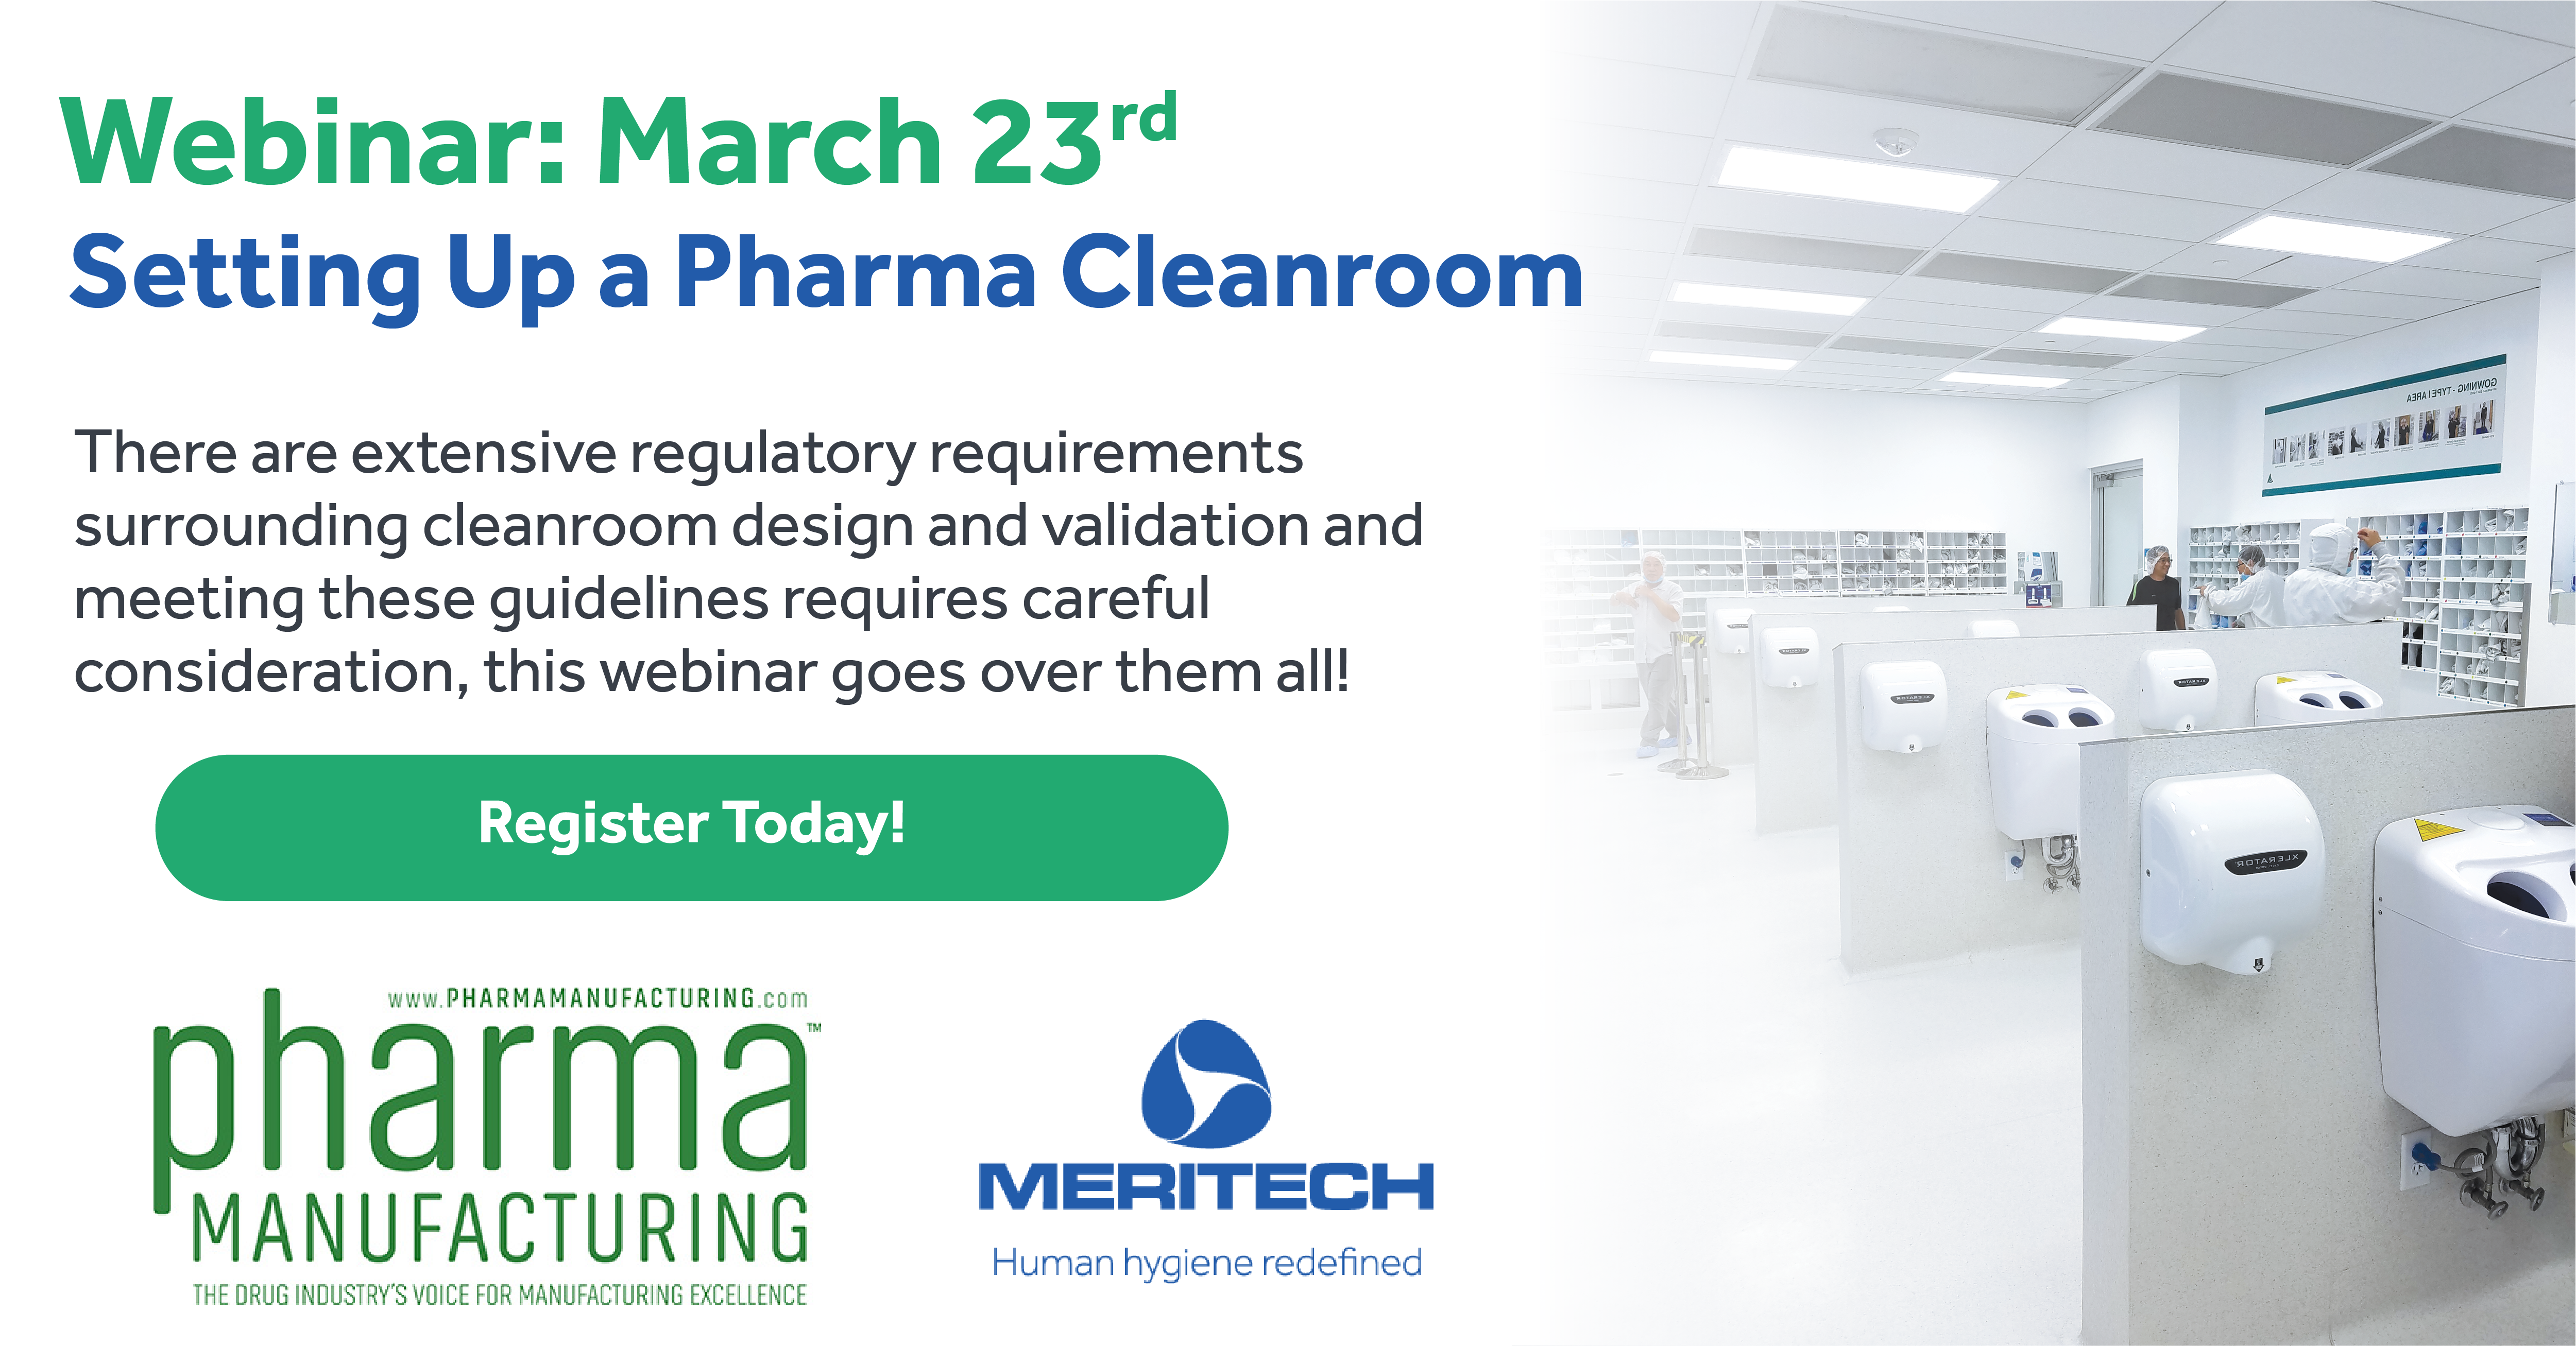 "Meritech to Sponsor Upcoming Webinar ""Setting Up a Pharma Cleanroom"""